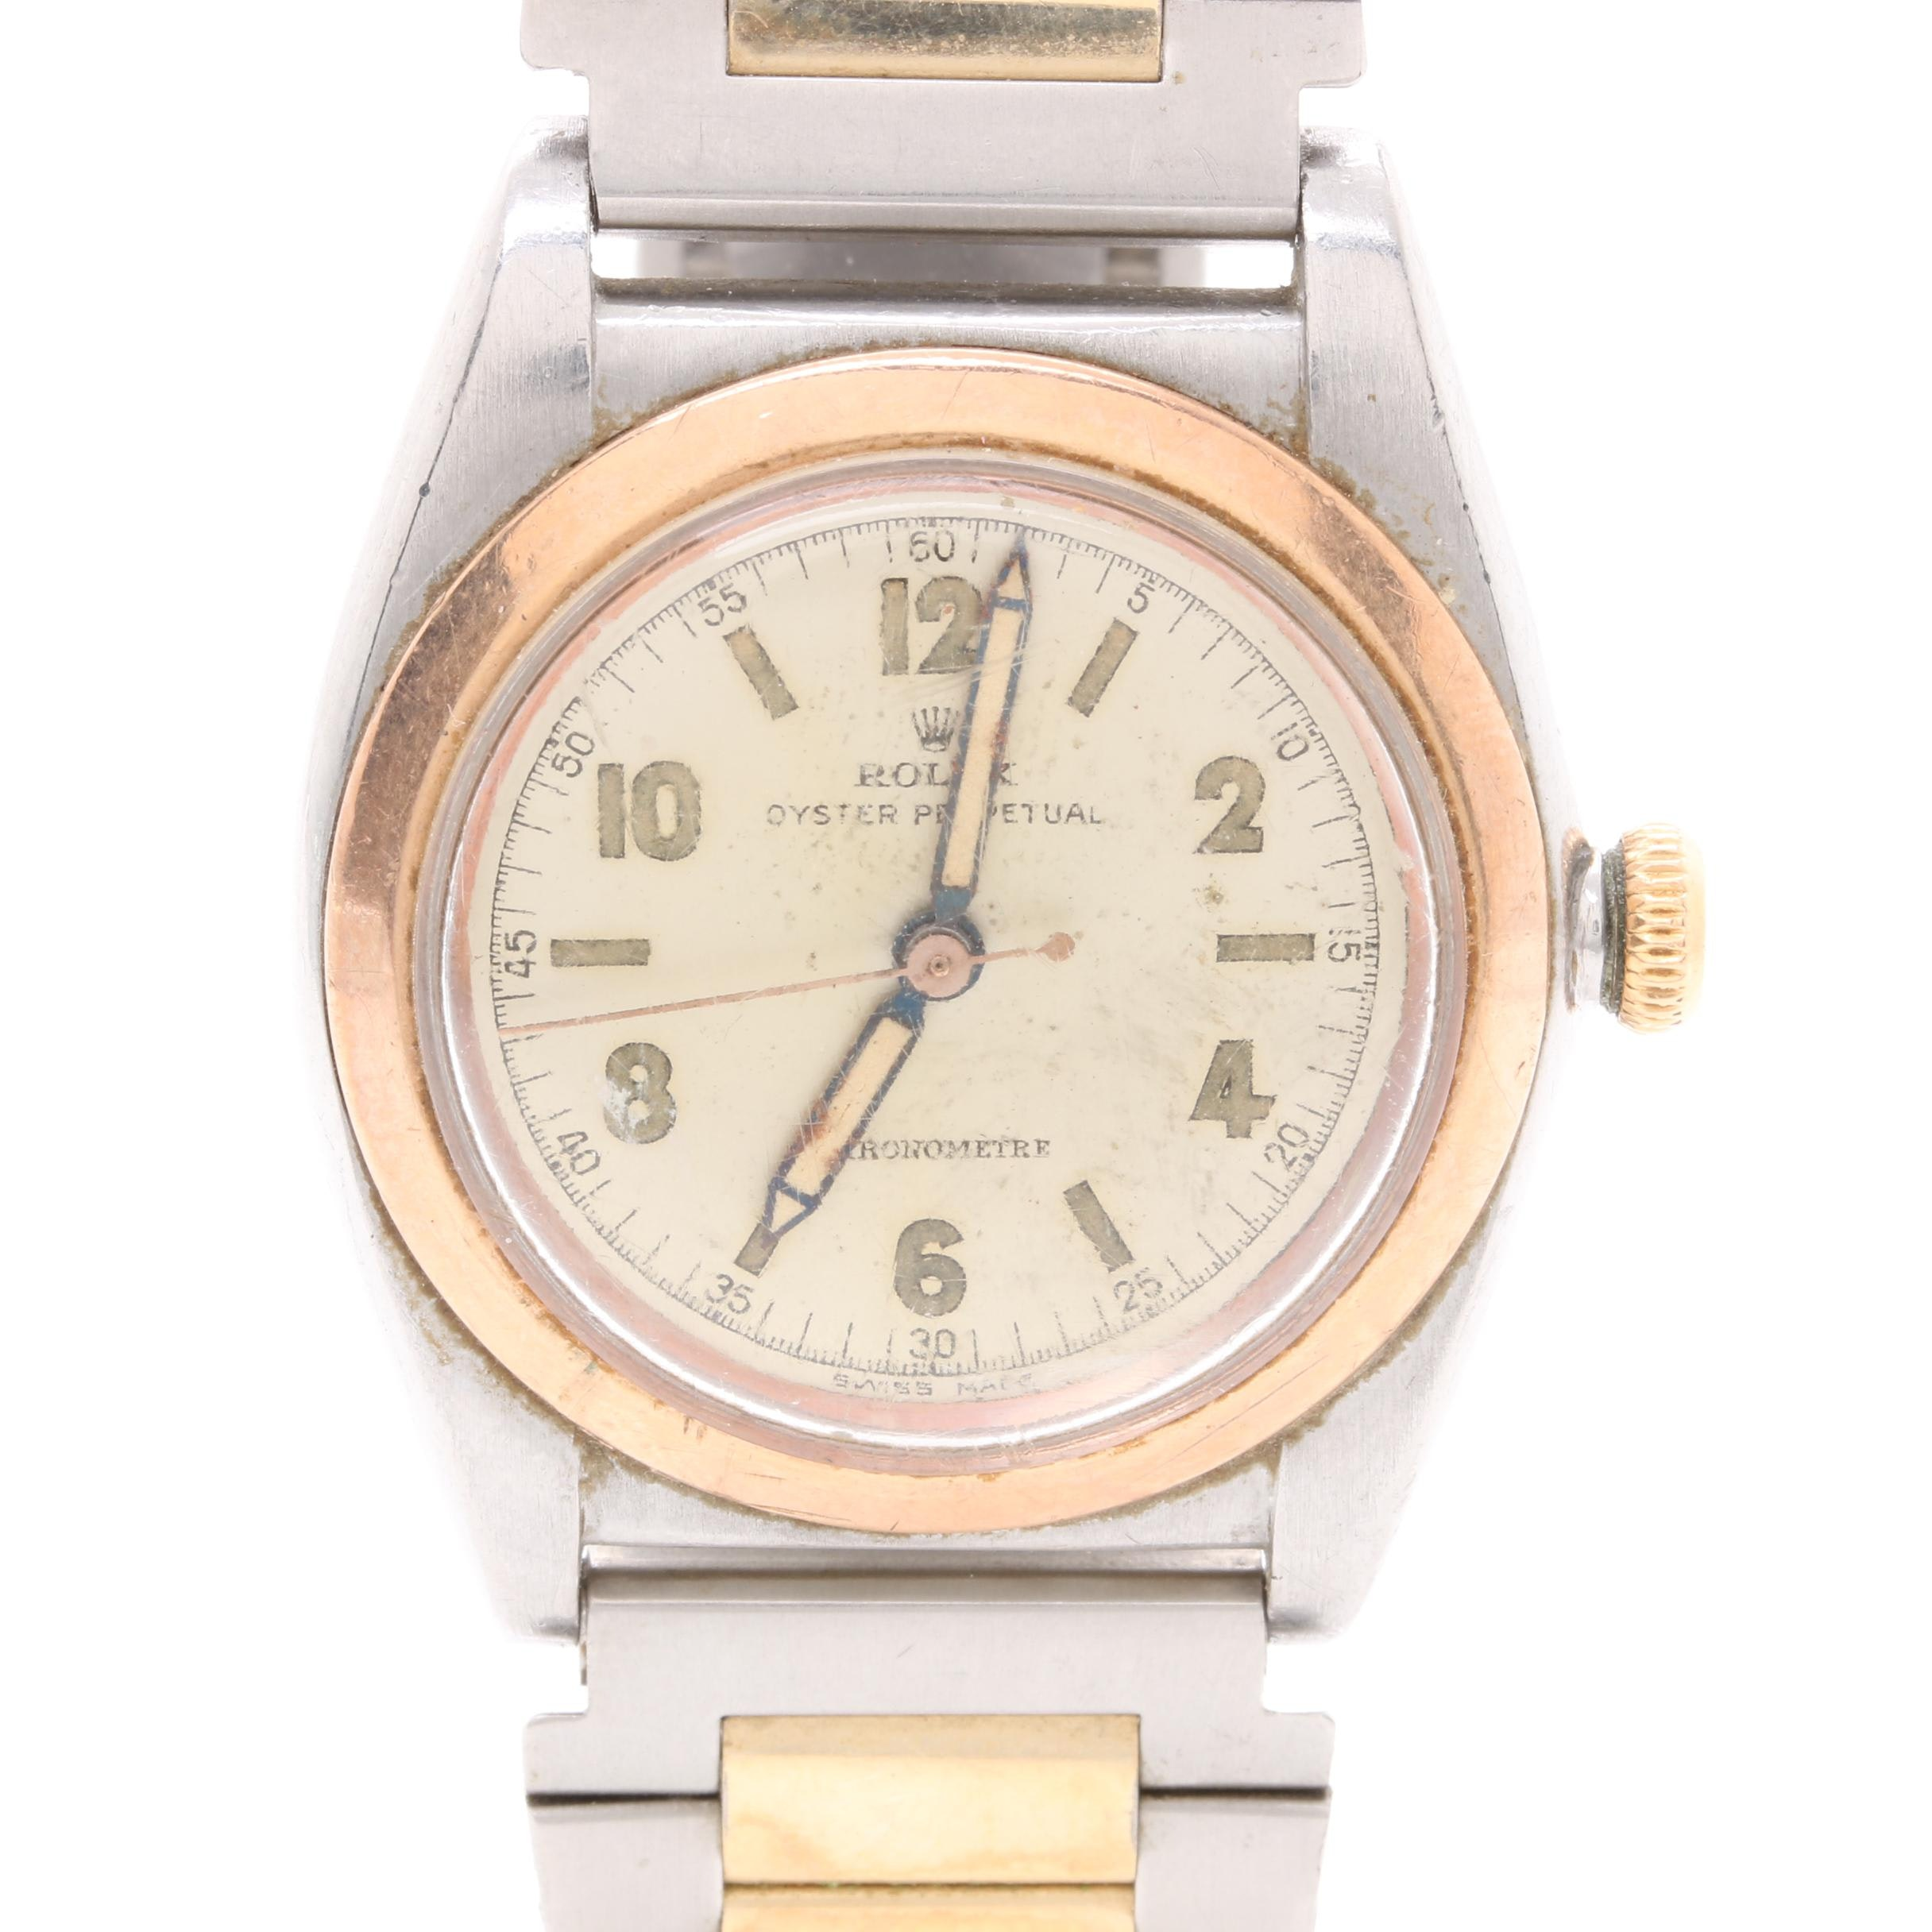 Rolex Oyster Perpetual Chronometer Stainless Steel with 14K Rose Gold Wristwatch